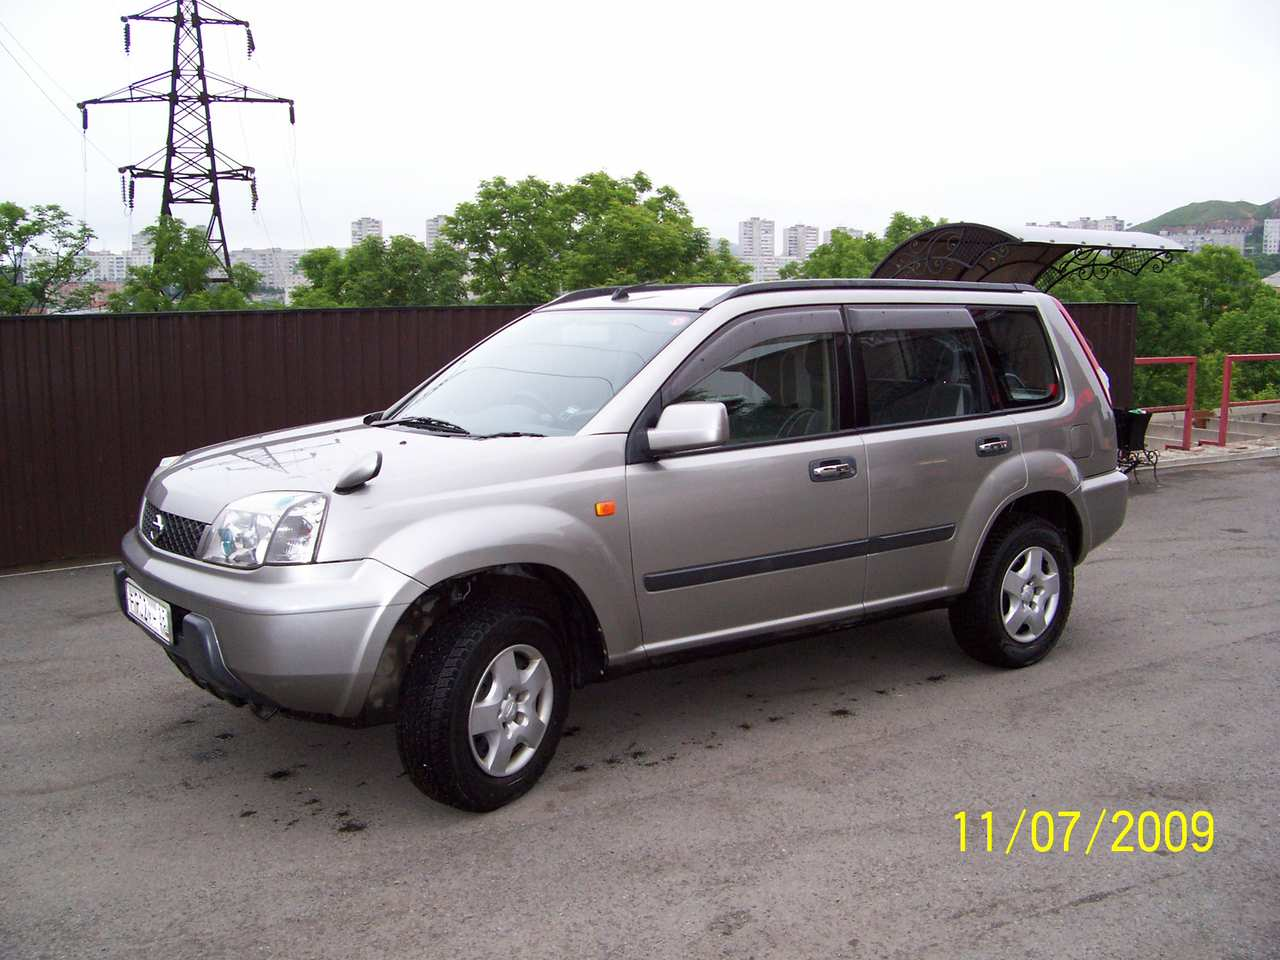 Nissan x Trail a1248423605b2888581 p moreover d8 ae d9 84 d9 81 d9 8a d8 a7 d8 aa  d8 a8 d9 84 d9 88 d9 86  d9 88 d8 a7 d8 ad d8 af additionally 2001 Lincoln Navigator Battery Location besides Chevy Cruze 1 4l Turbo Engine Diagram moreover Egr Valve. on ford fuel pump problems